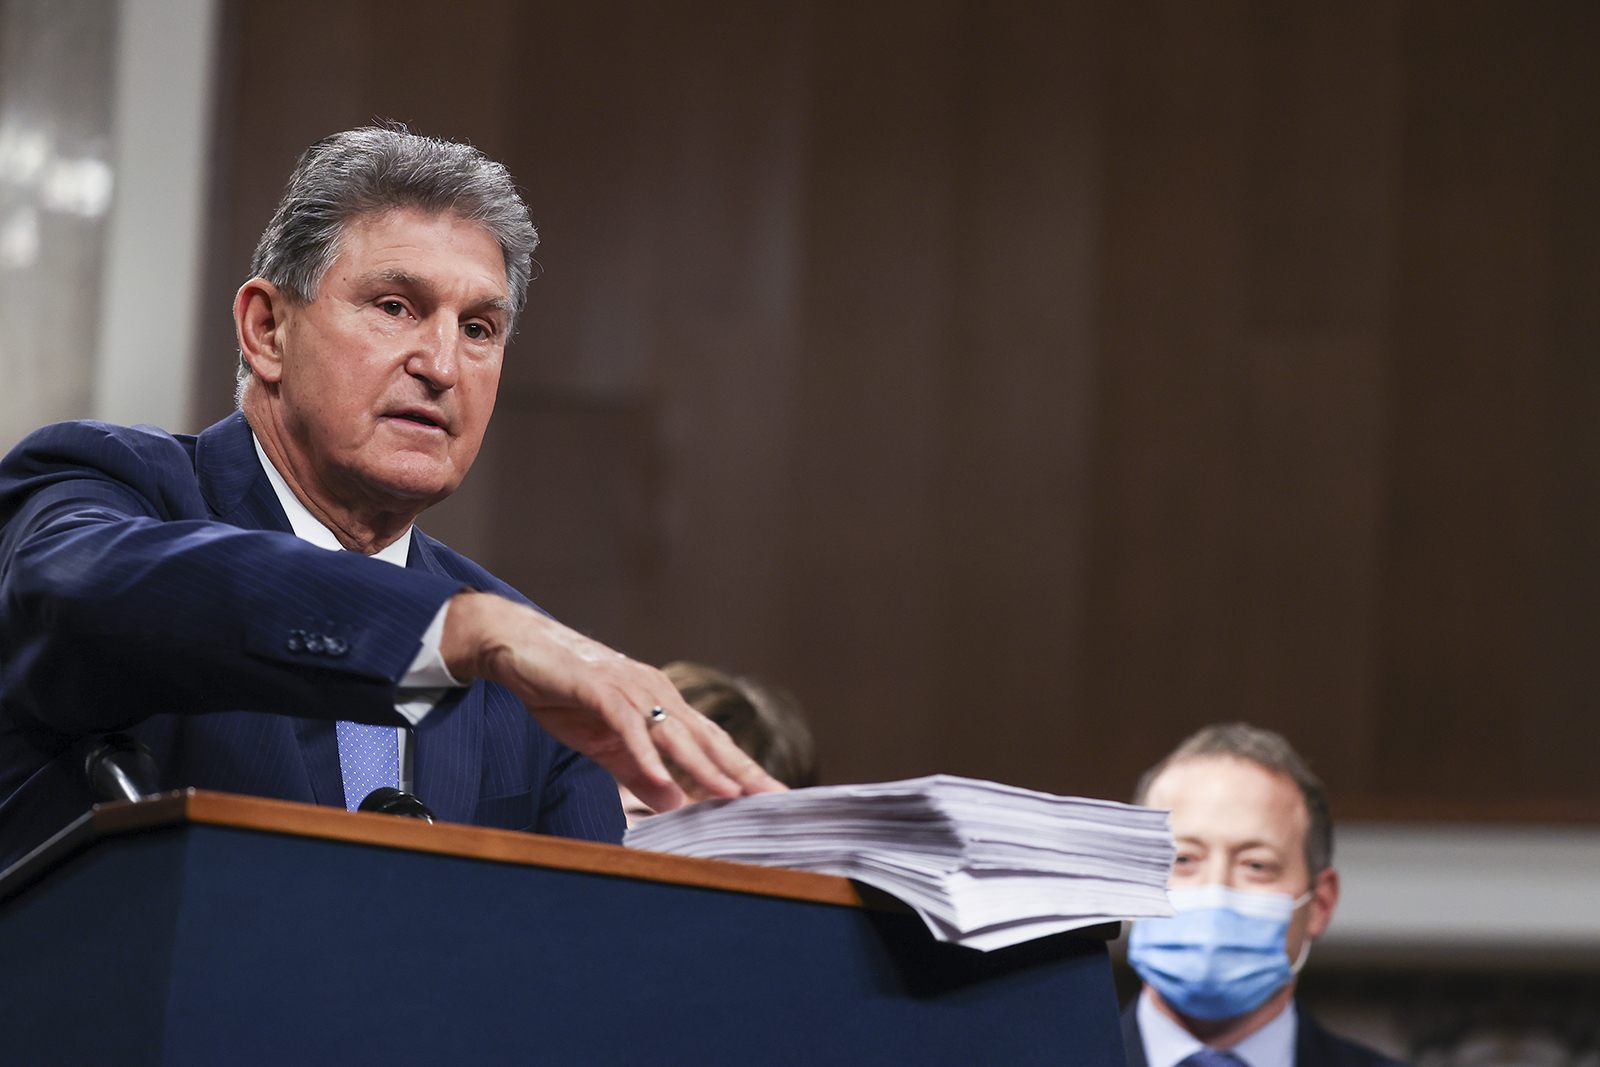 Sen. Joe Manchin speaks alongside a bipartisan group of Democrat and Republican members of Congress as they announce a proposal for a Covid-19 relief bill on Capitol Hill on December 14 in Washington.